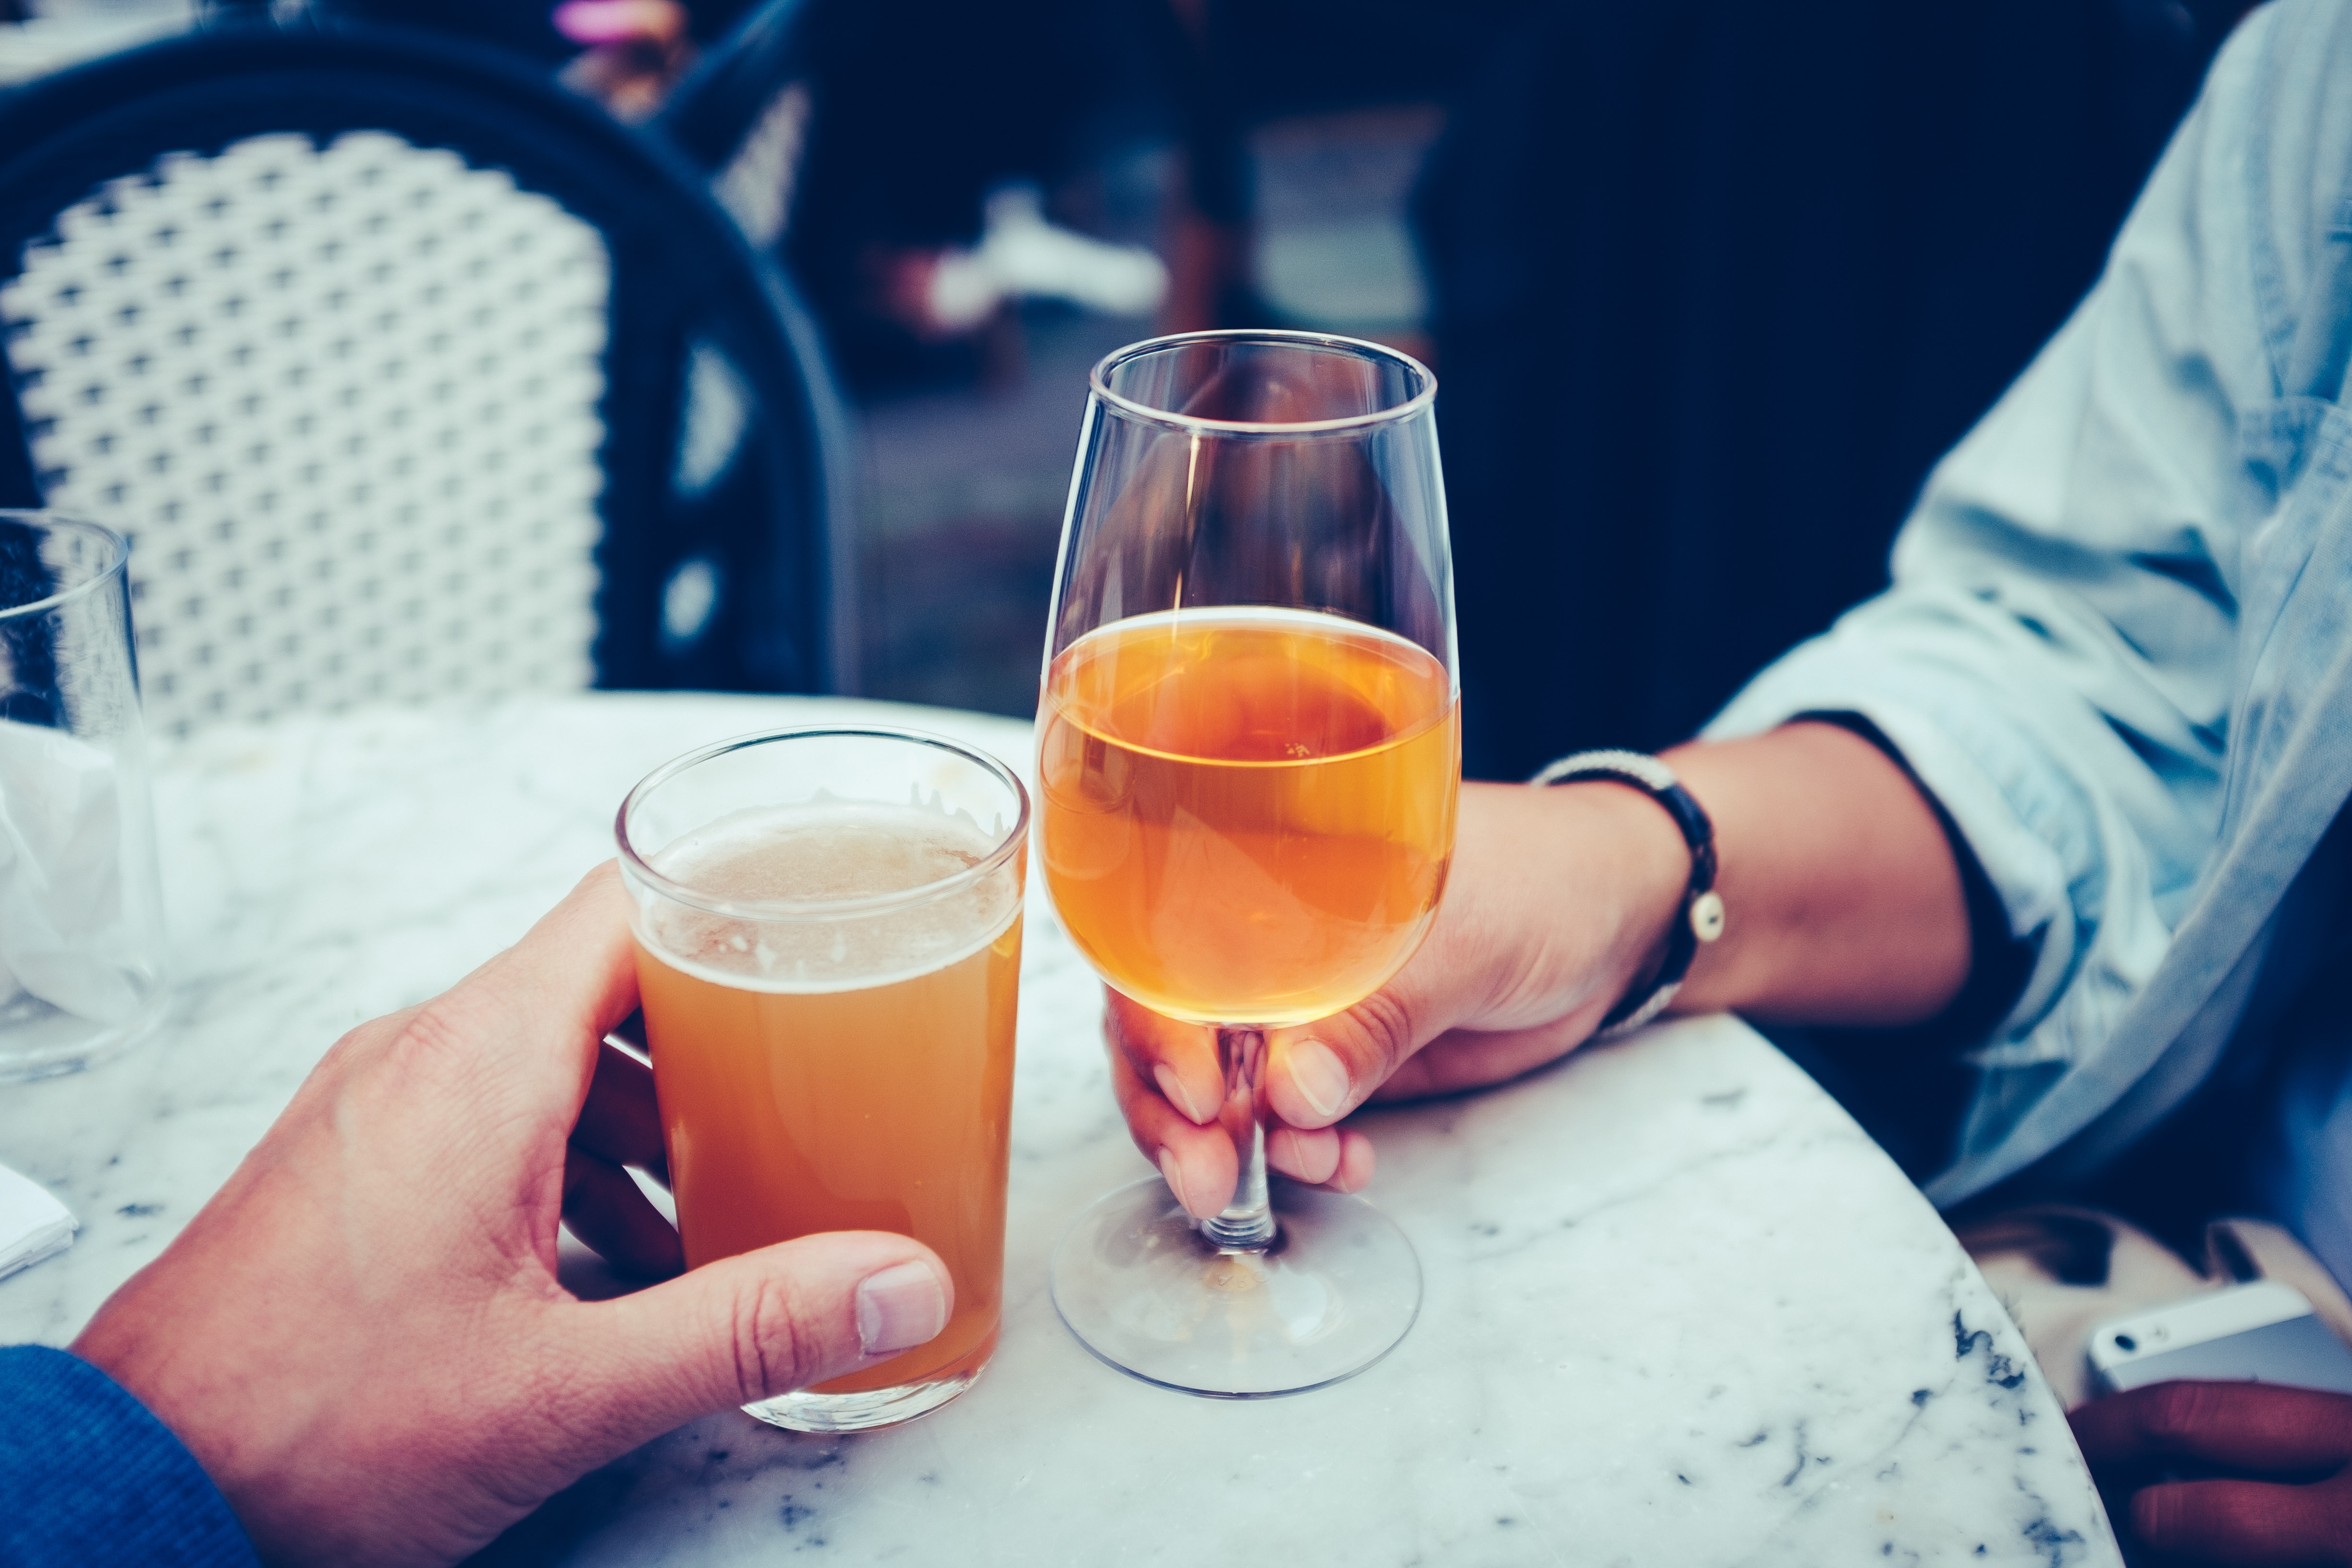 Two people drinking beer and wine at a marble table